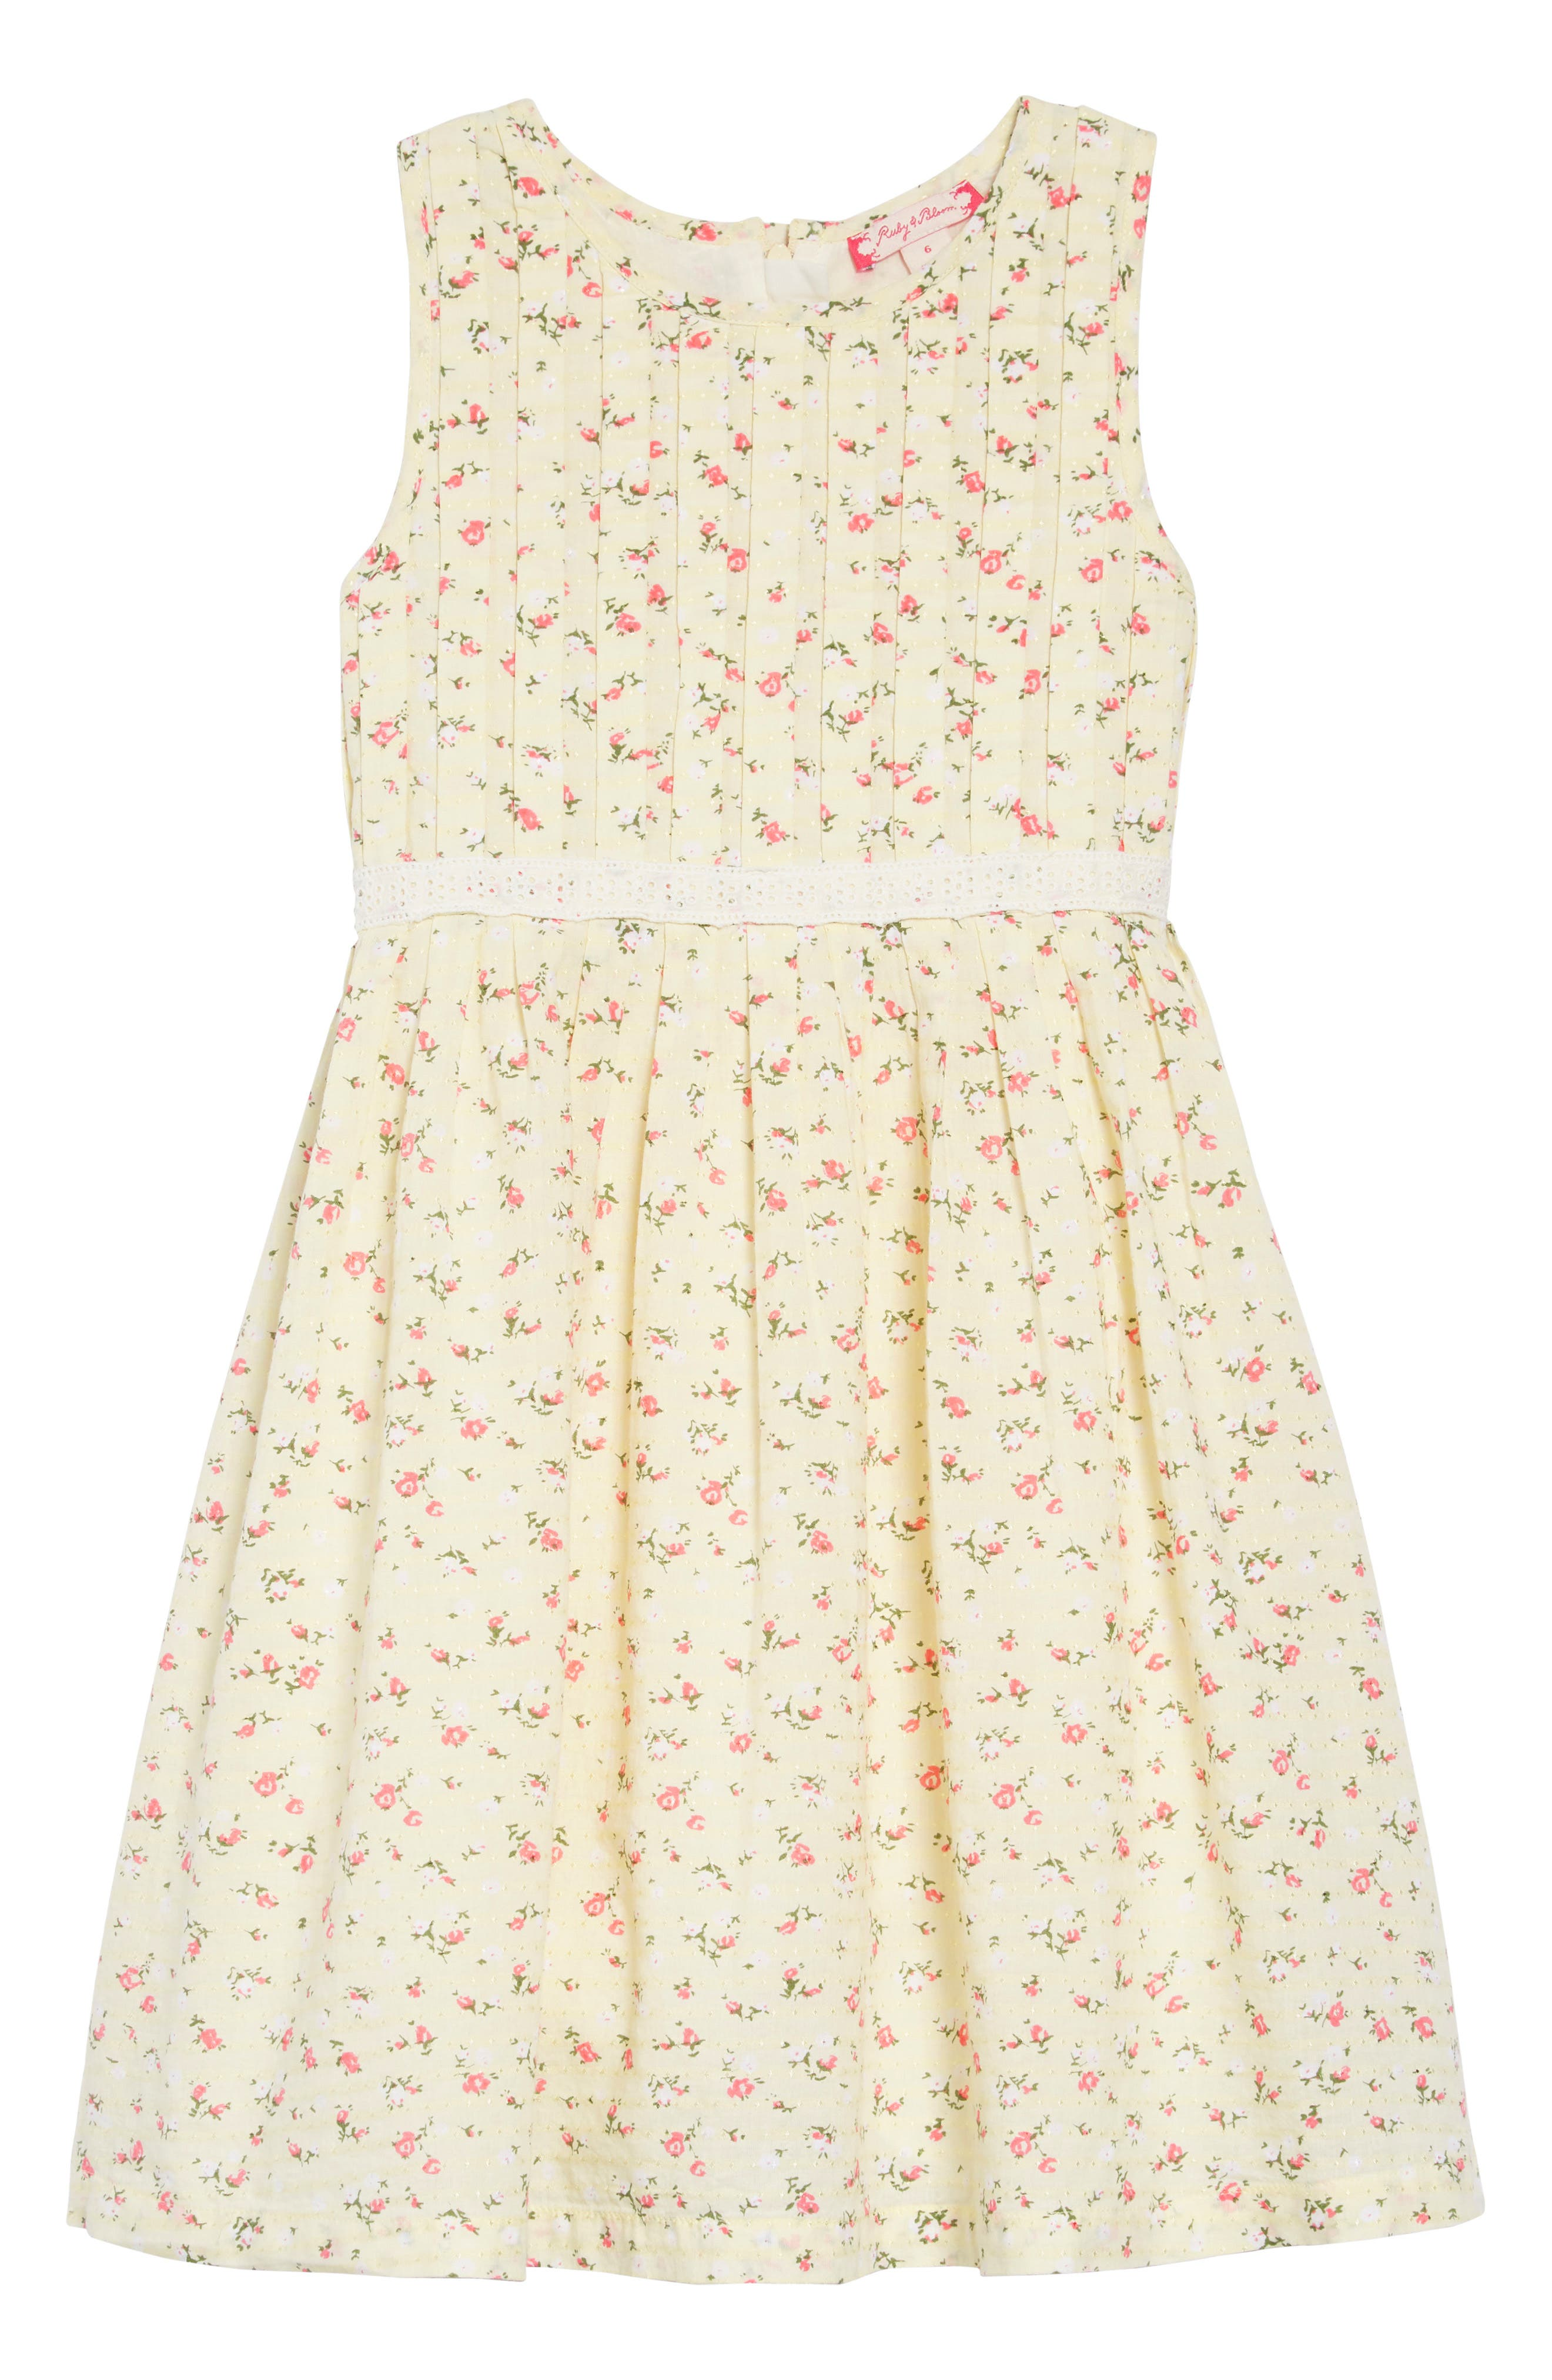 RUBY & BLOOM Dobby Floral Pleat Dress, Main, color, YELLOW SOFT SUNSHINE DITSY